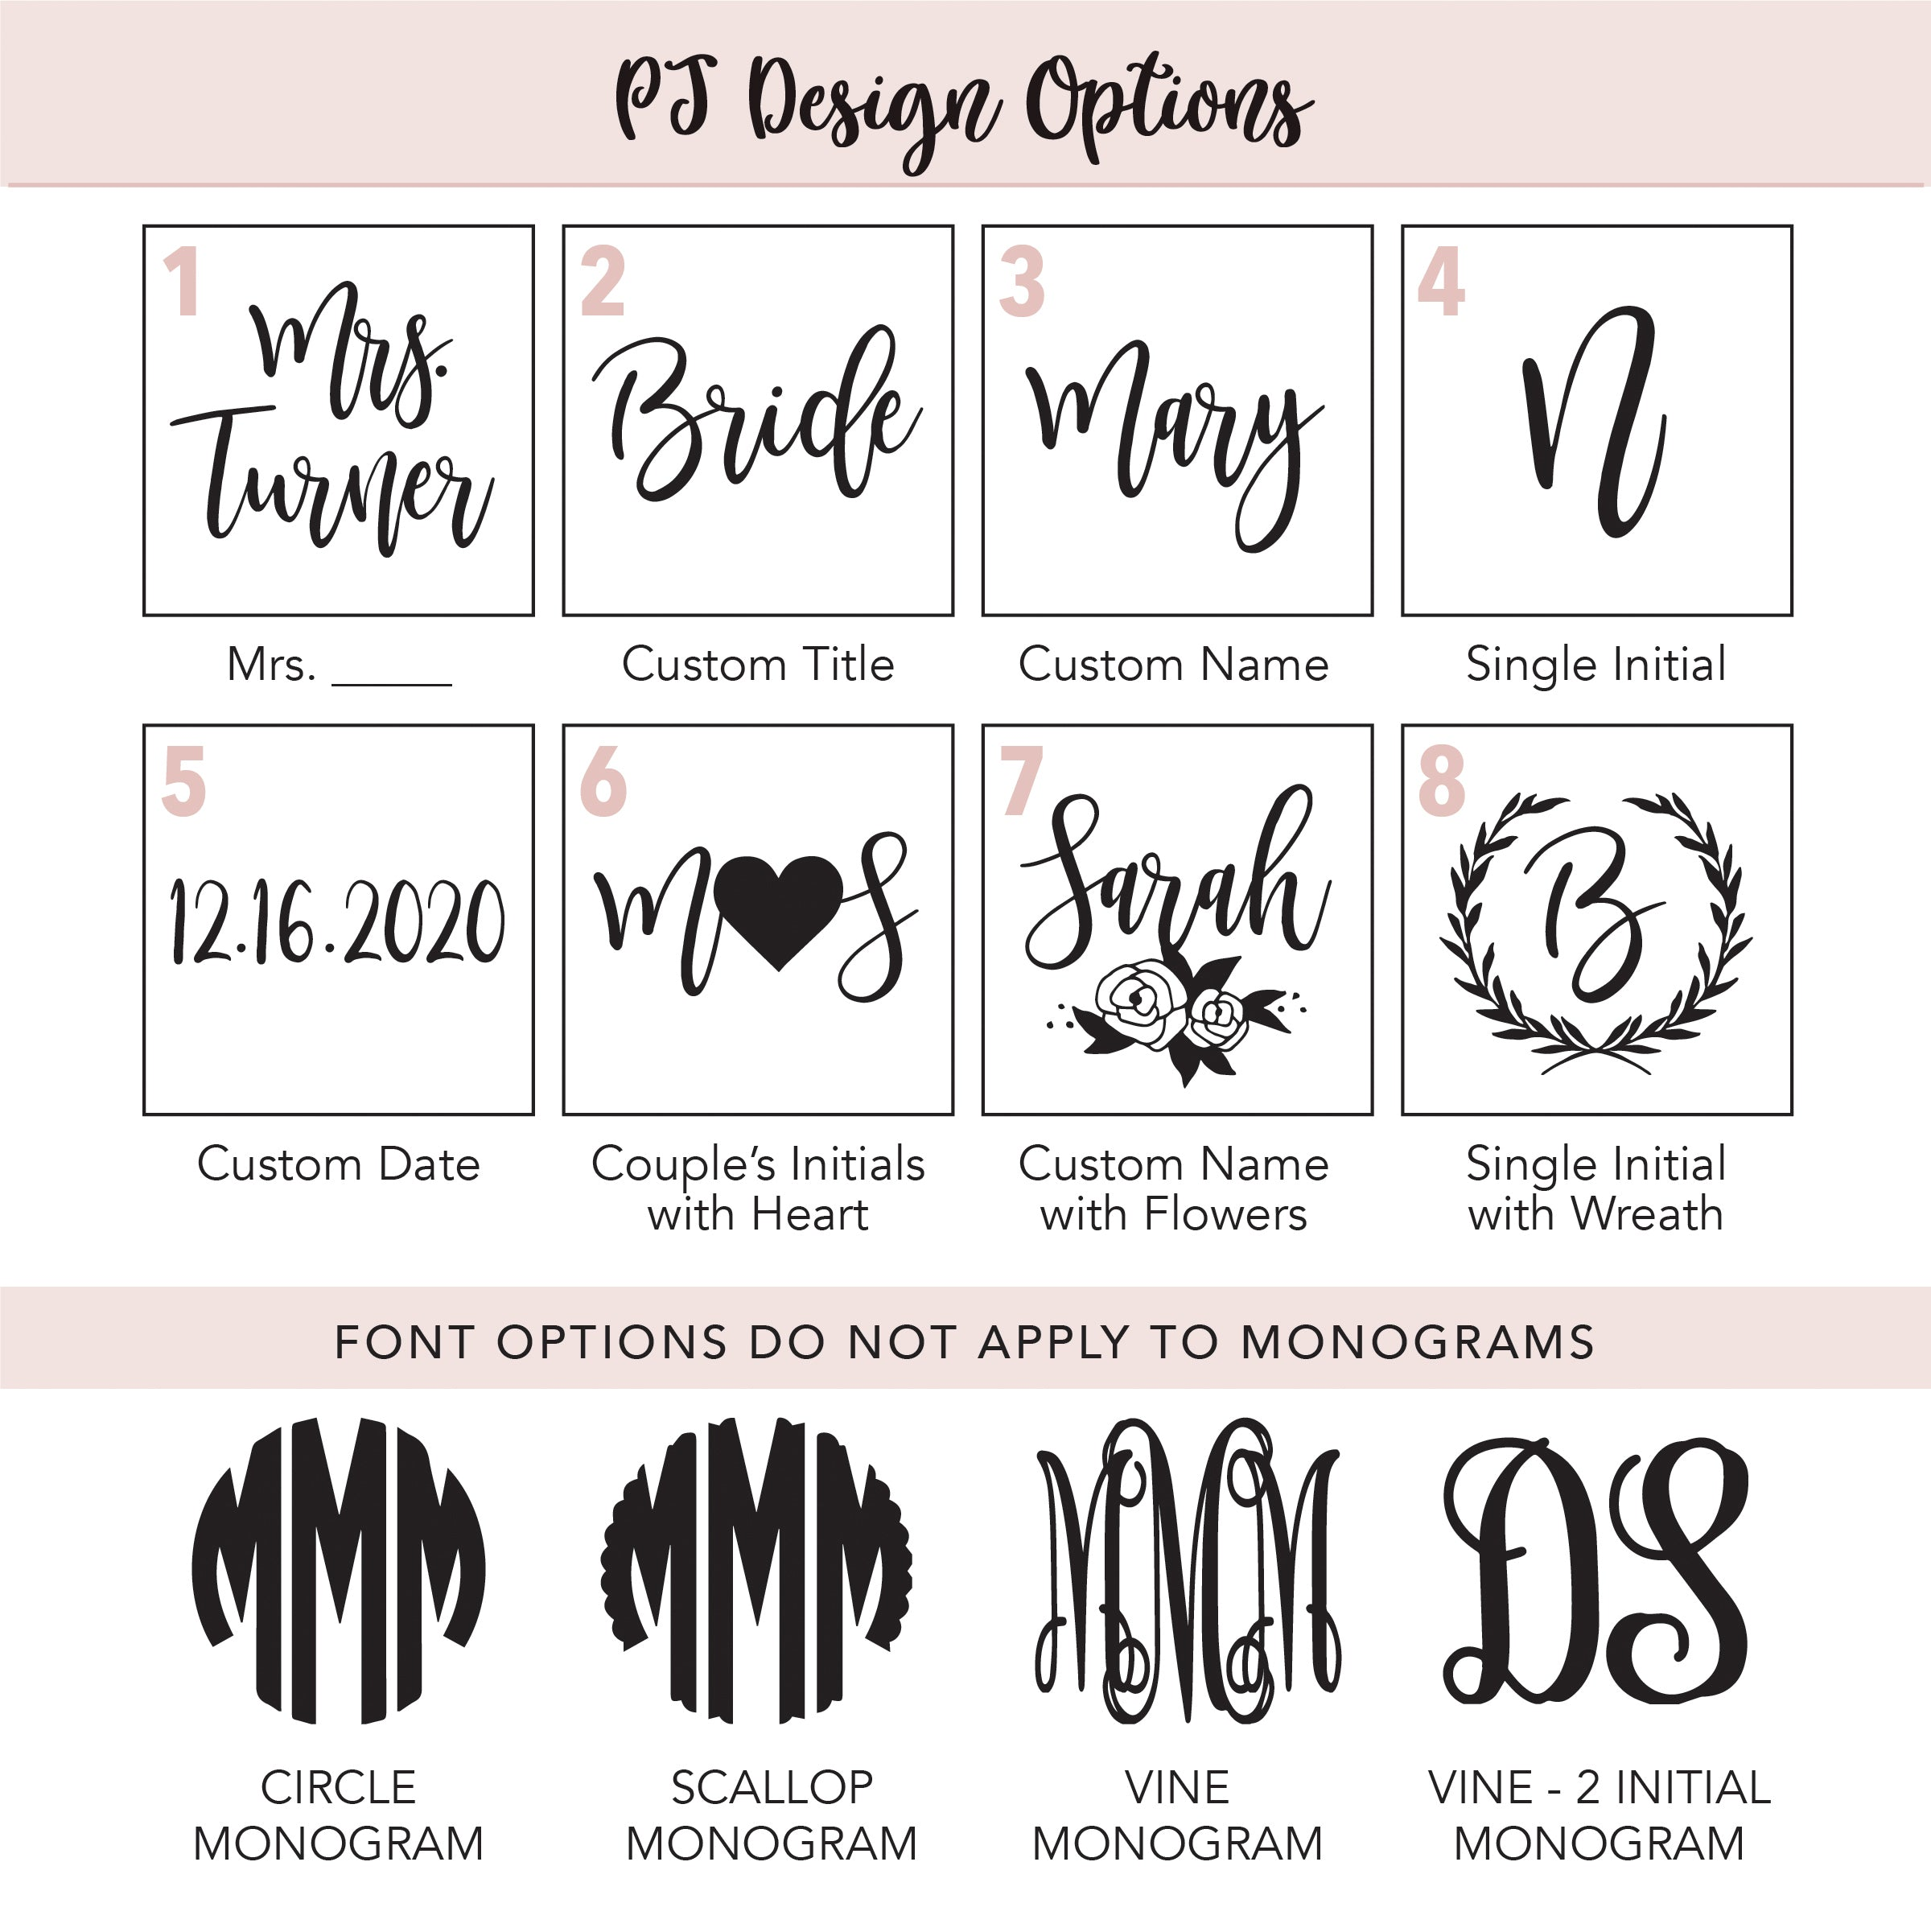 simple & sentimental PJ design options